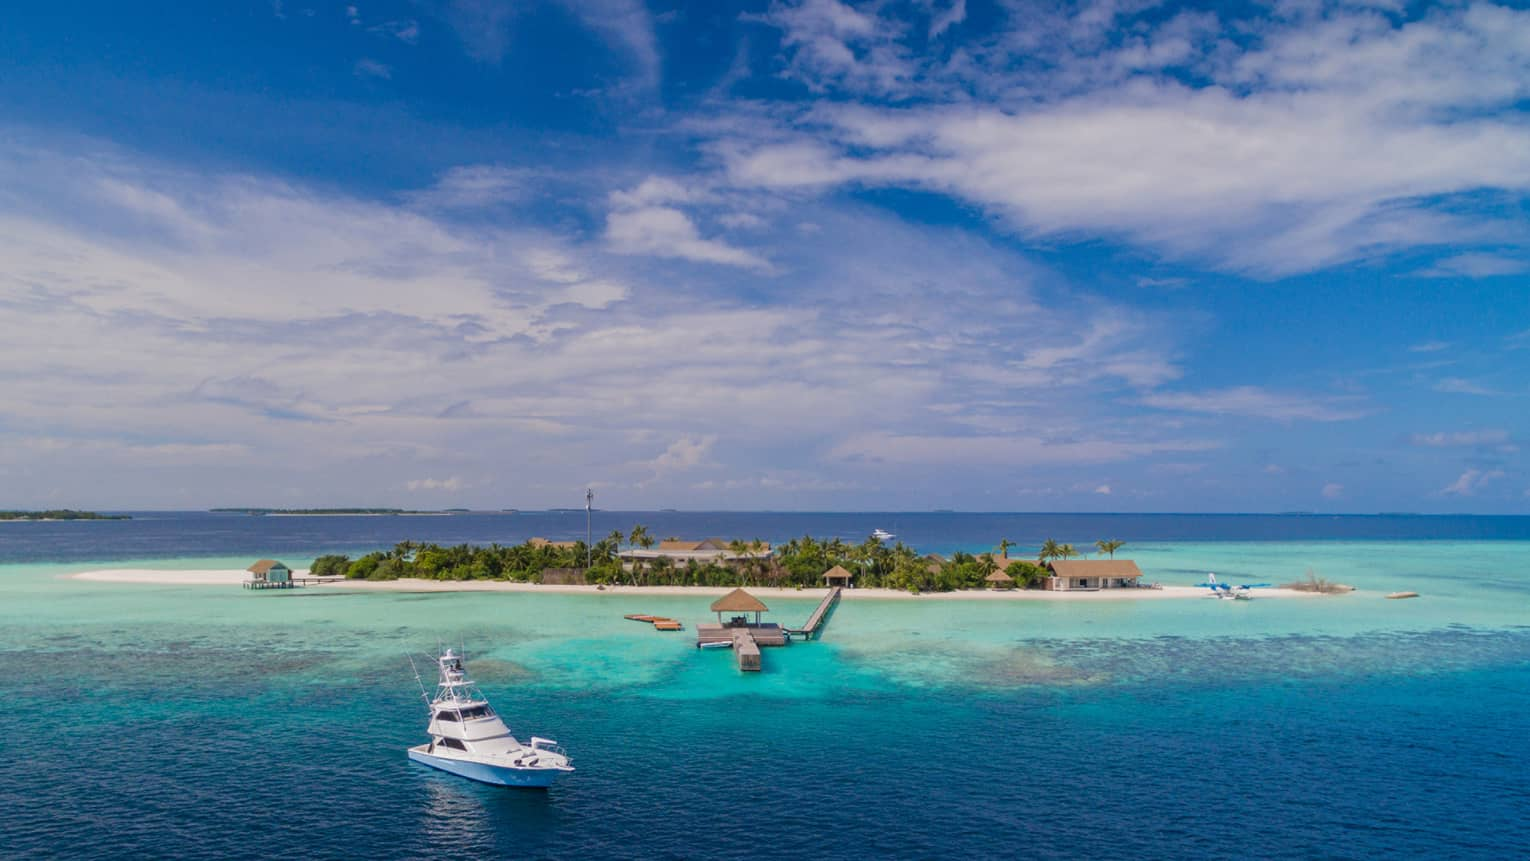 Aerial view of white yacht in lagoon near Four Seasons Maldives private island resort